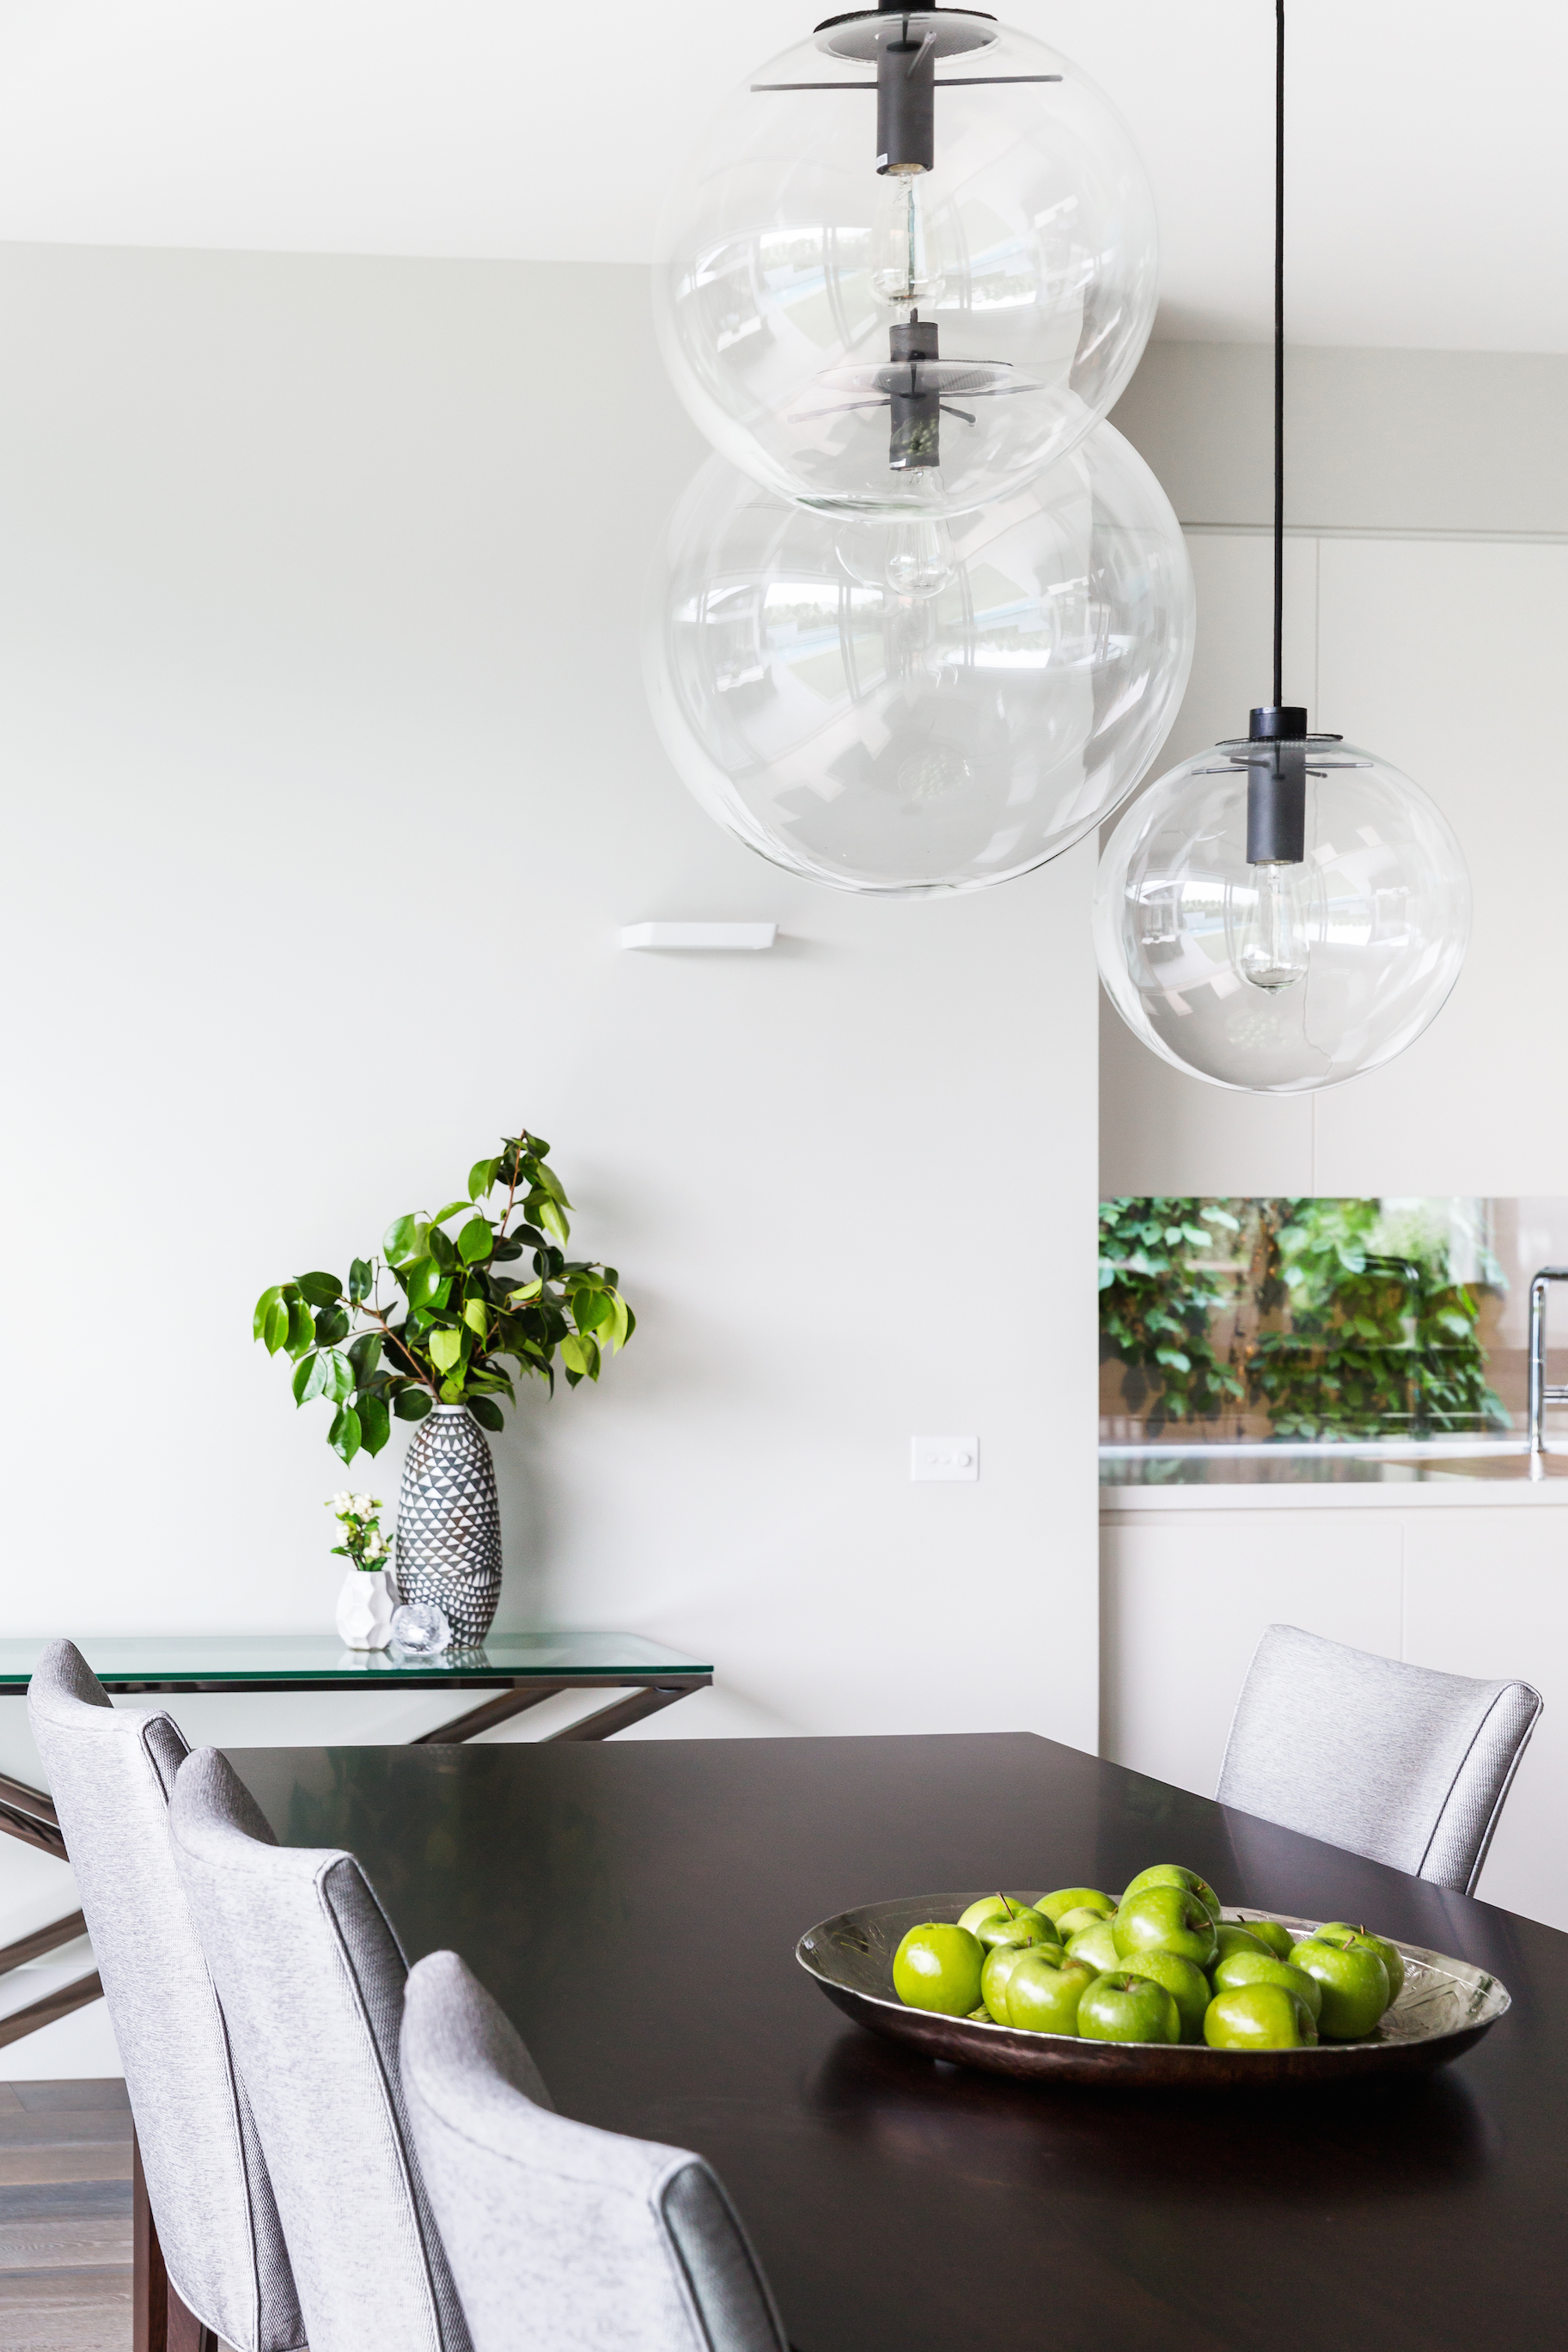 The dining table is a lengthy, dark stained hardwood piece, flanked by bespoke grey parson chairs. A set of spherical pendant lights float above.